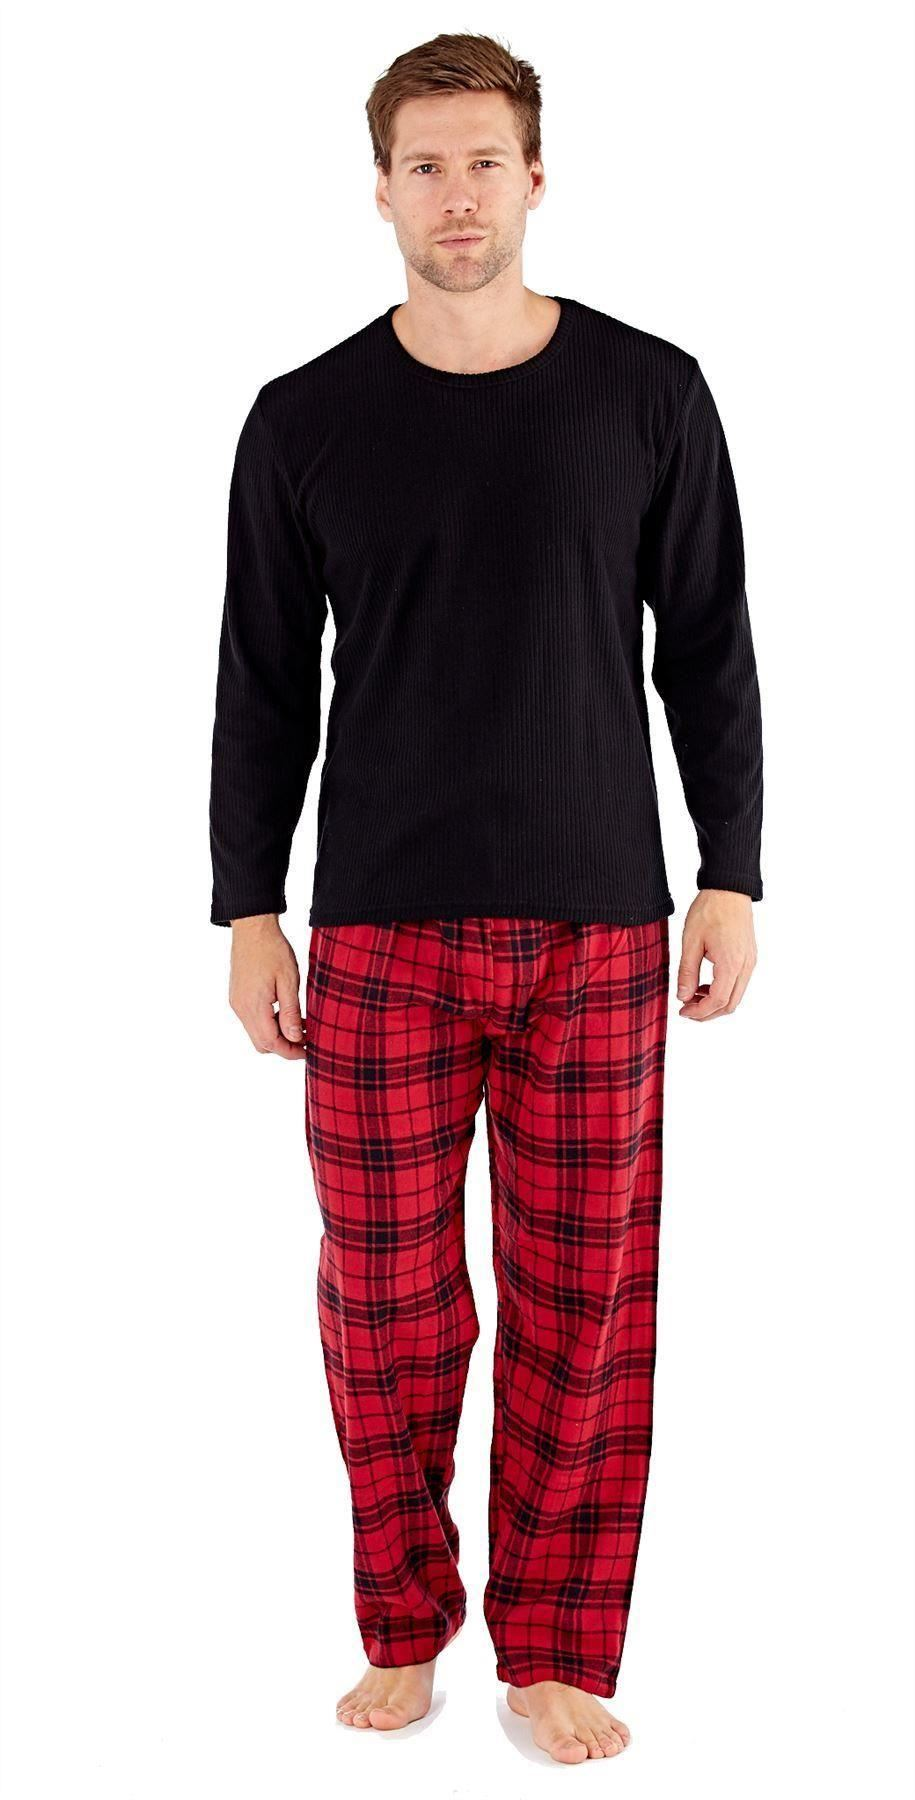 Harvey James Mens Check Pyjama Pants Long Sleeve Top Lounge Sets L Red.  About this product. Picture 1 of 4  Picture 2 of 4 ... 75c185259